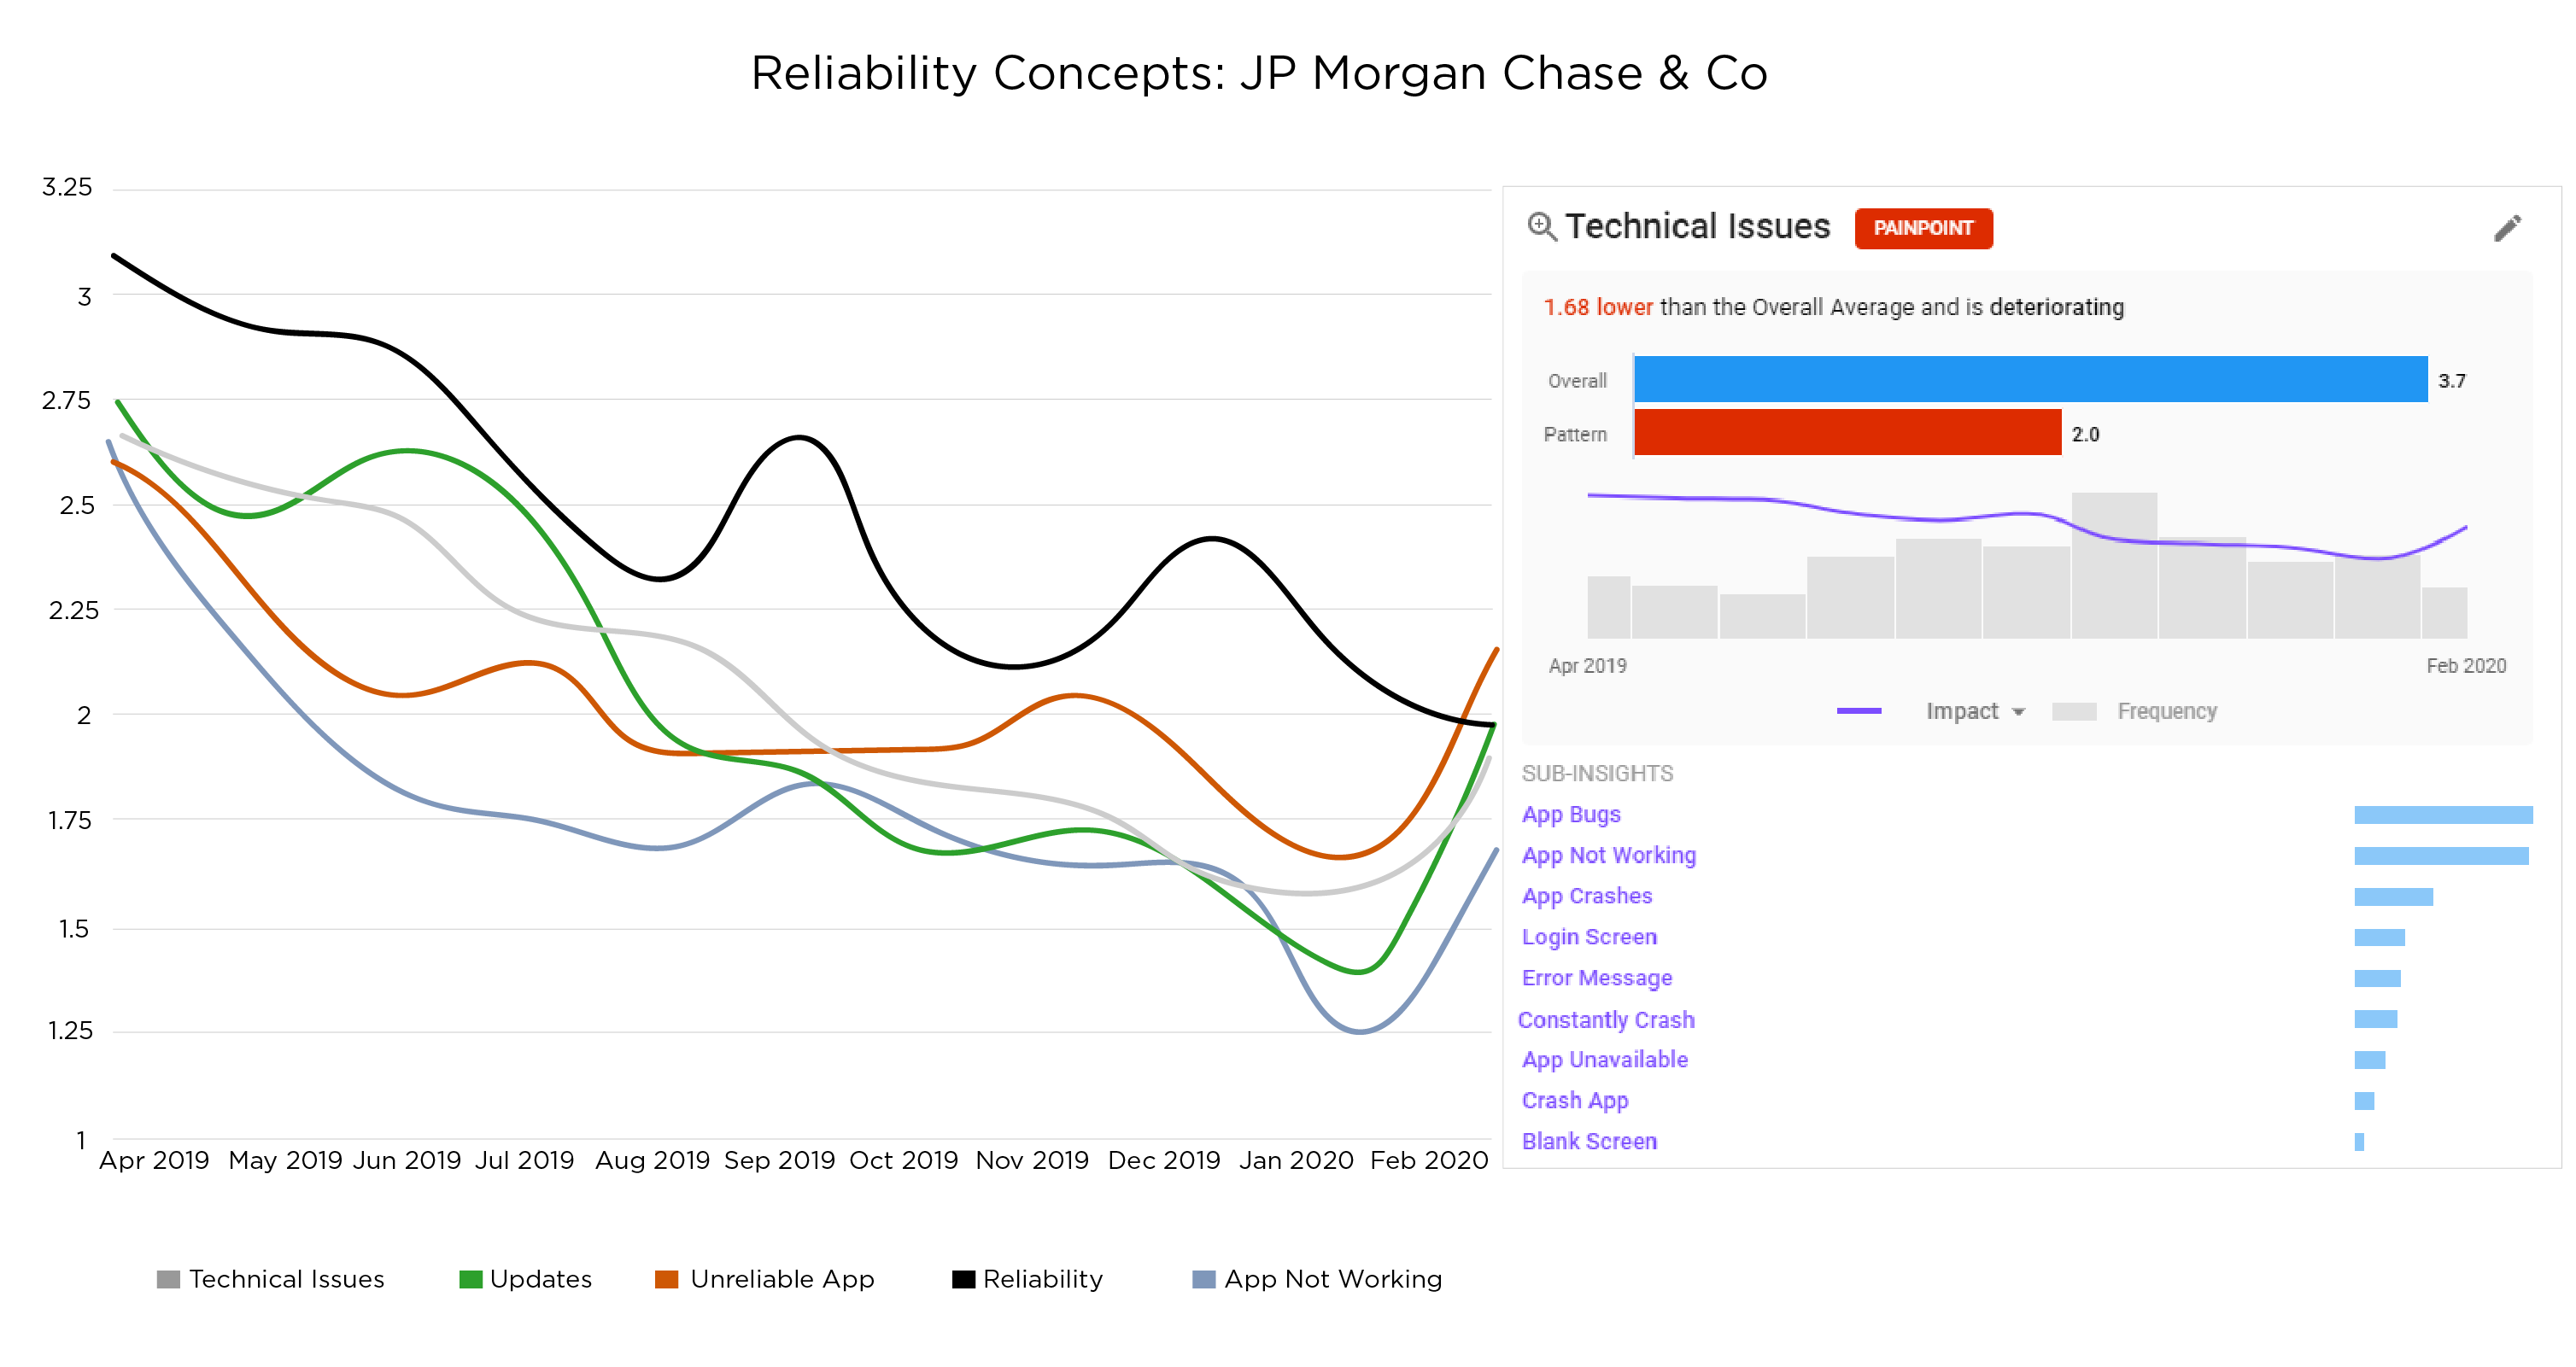 Ipiphany app benchmarking service Reliability trend over time